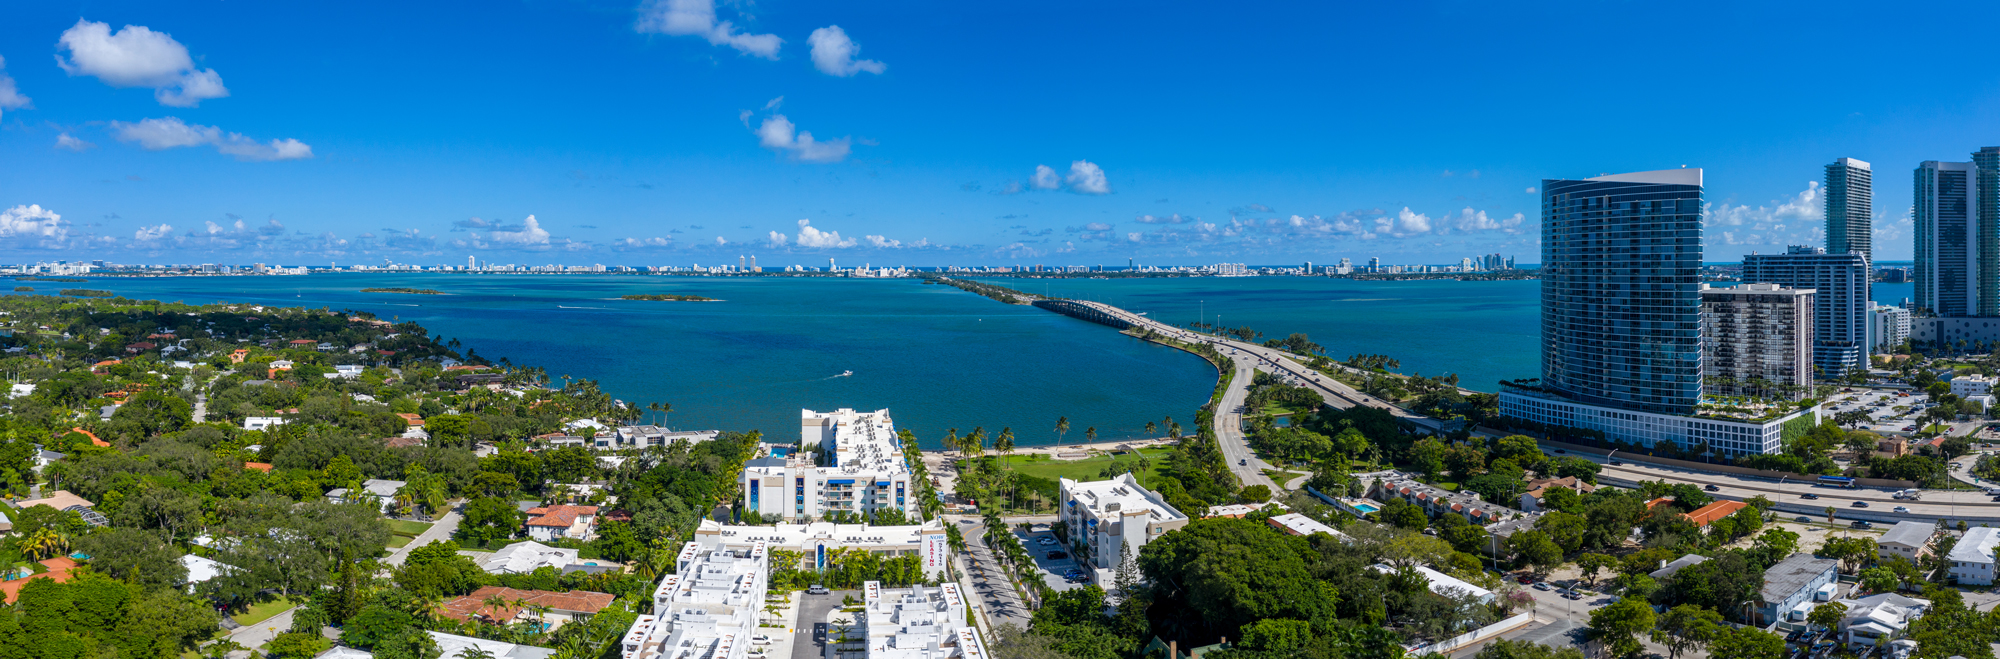 Quadro views of Biscayne Bay